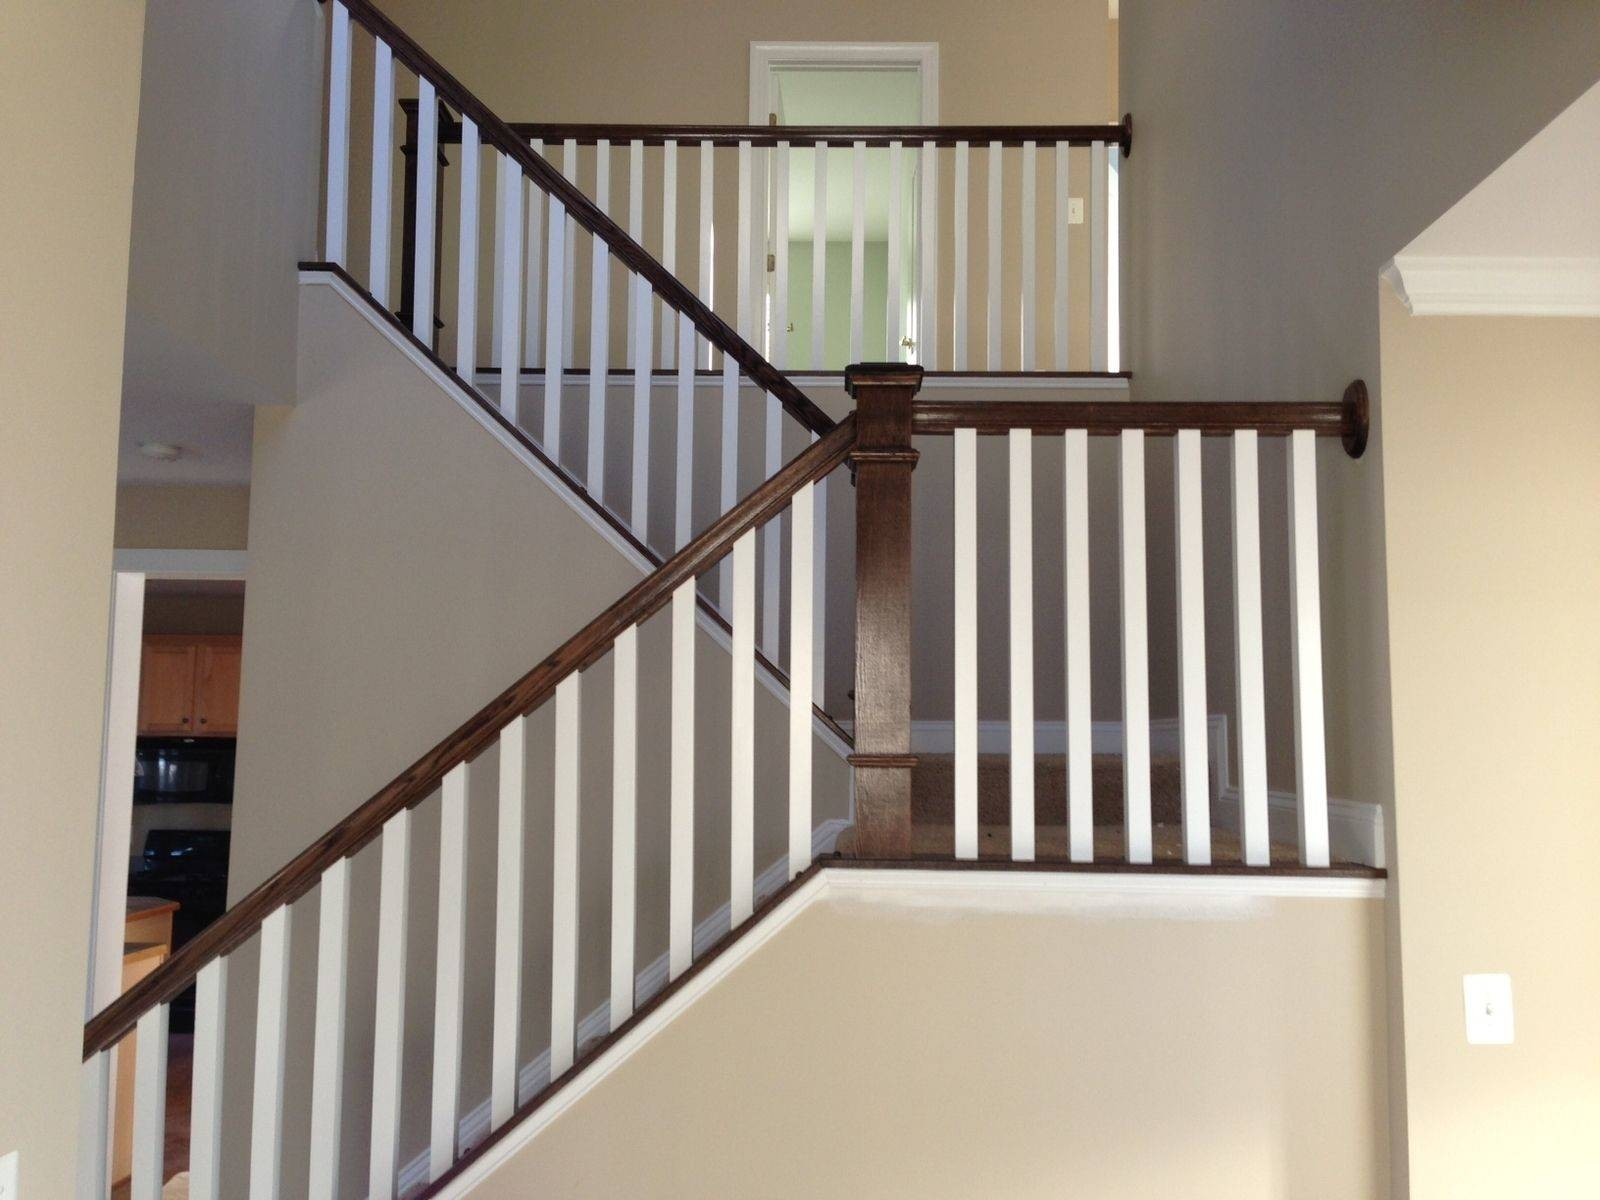 Stairs Amazing Stair Railings Indoor Home Depot Homes Decor | Iron Spindles Home Depot | Ole Iron Slides | Wm Coffman | Stair Parts | Oil Rubbed | Deck